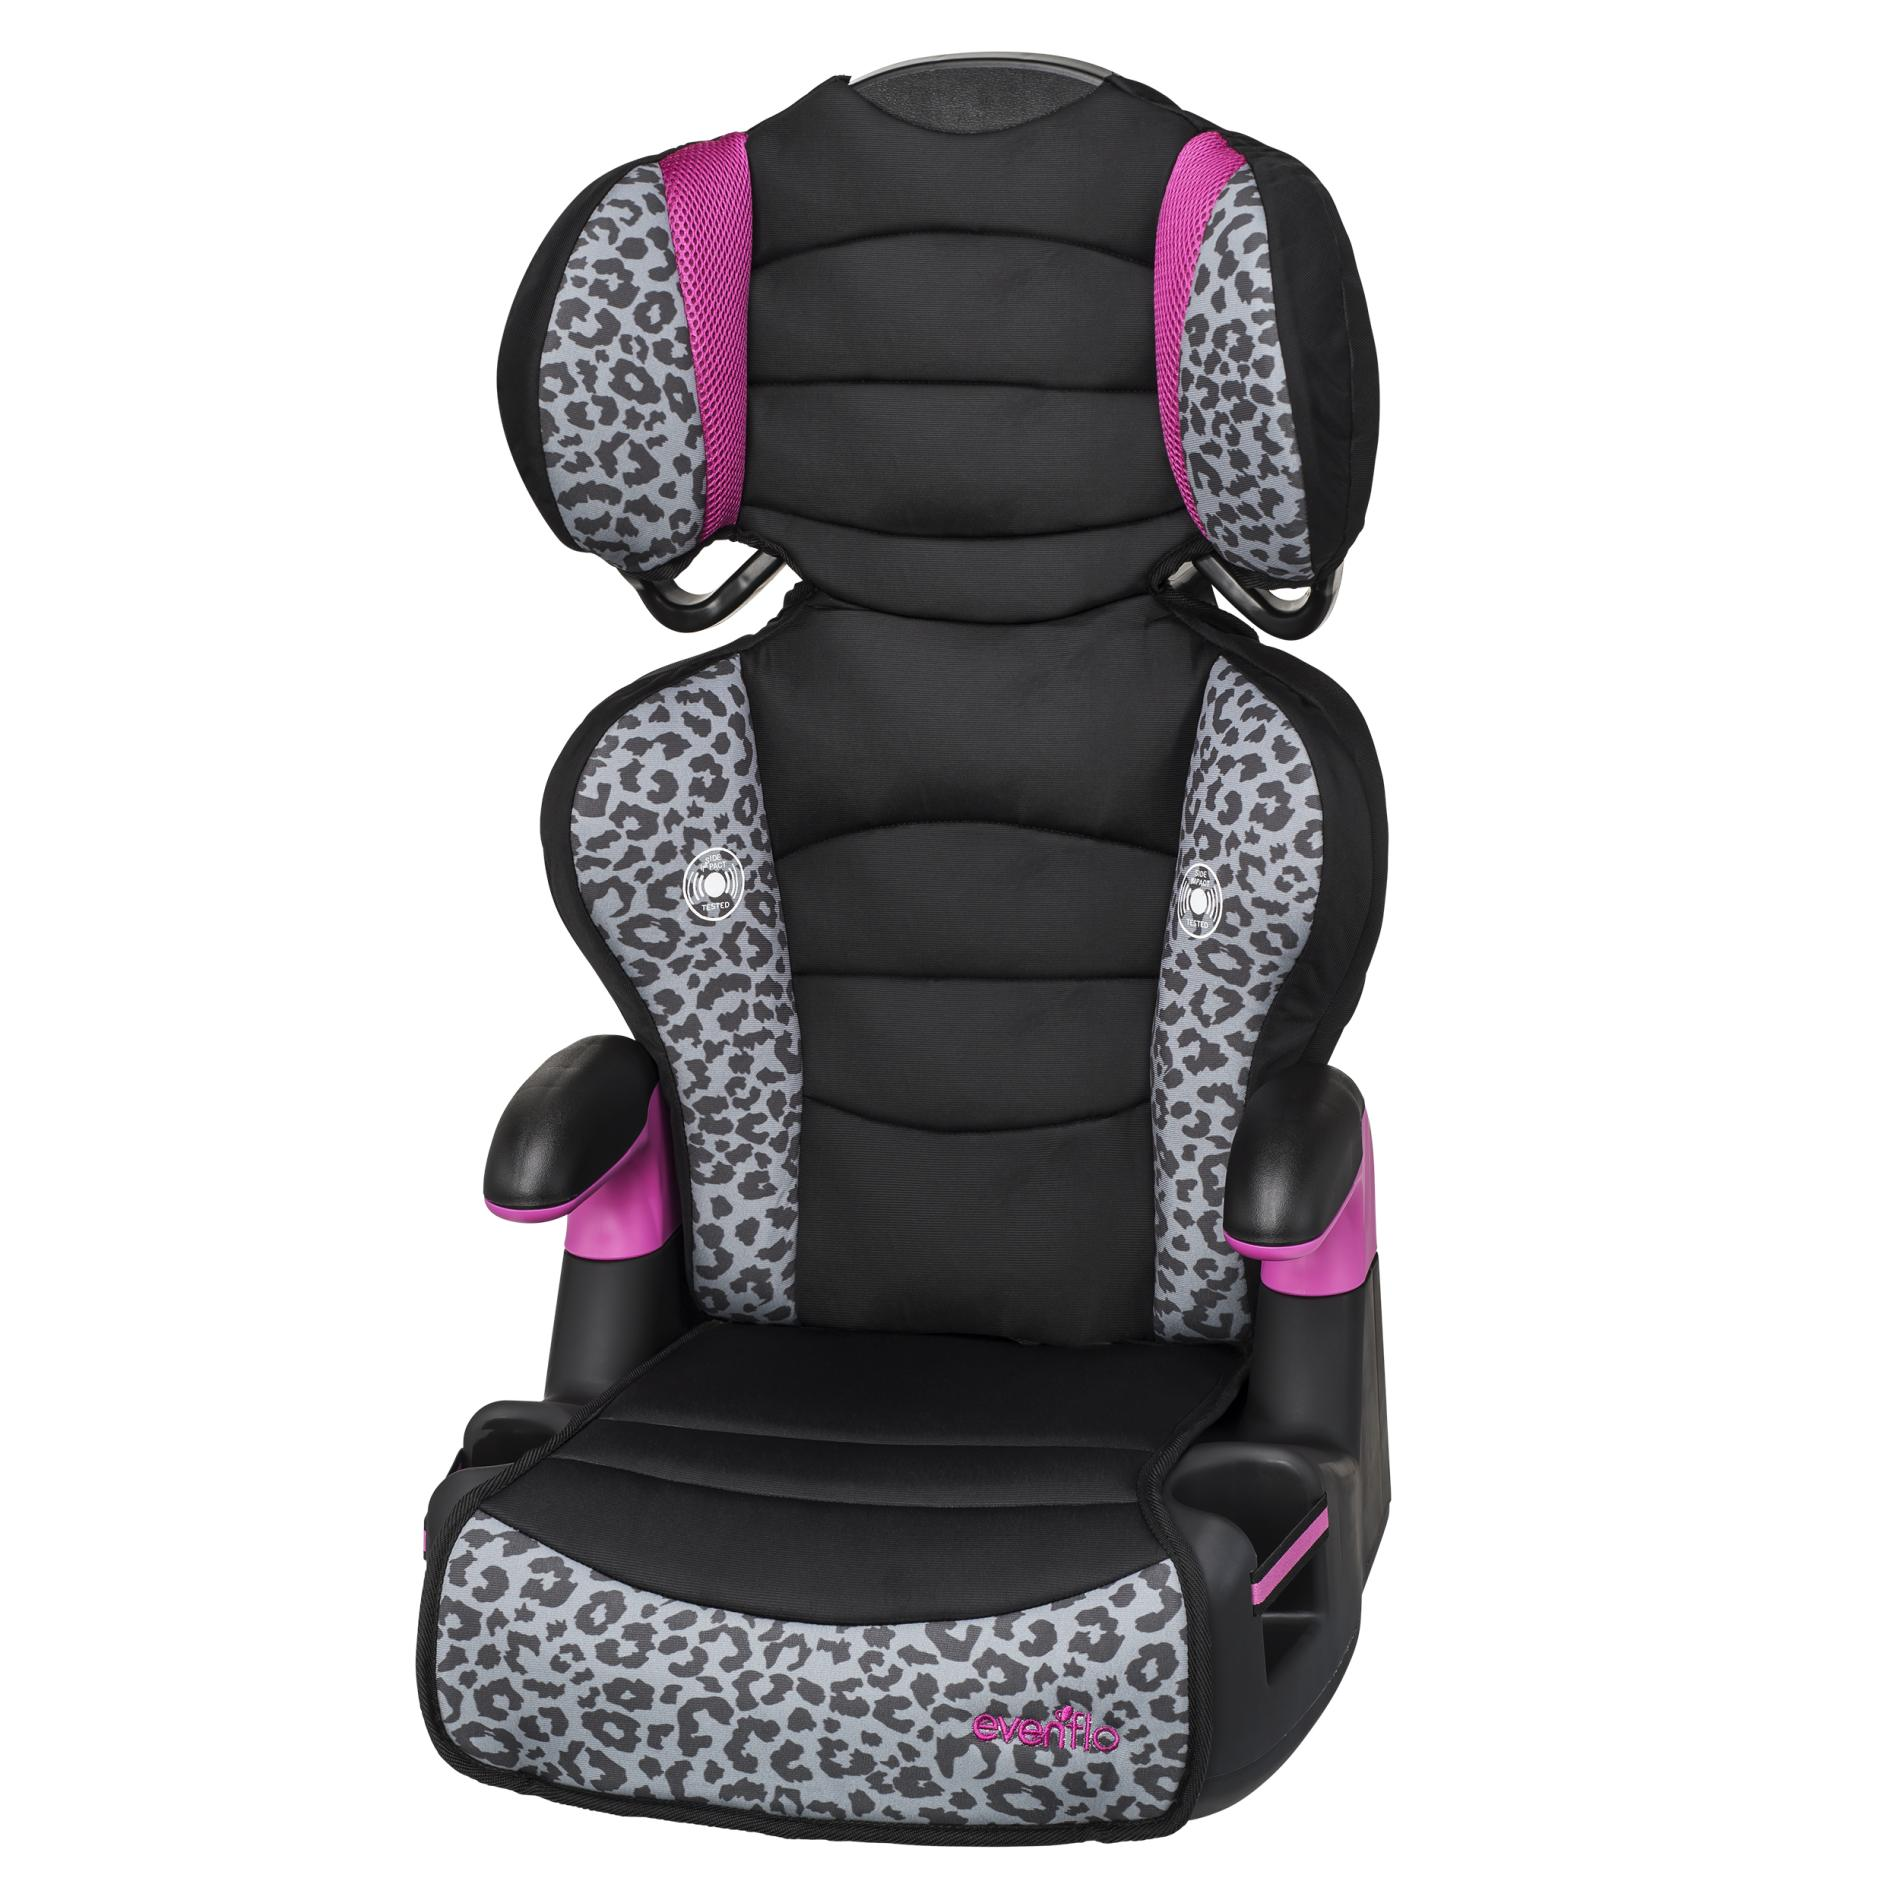 Baby Car Seat On Clearance Evenflo Convertible High Back Car Seat Leopard Print